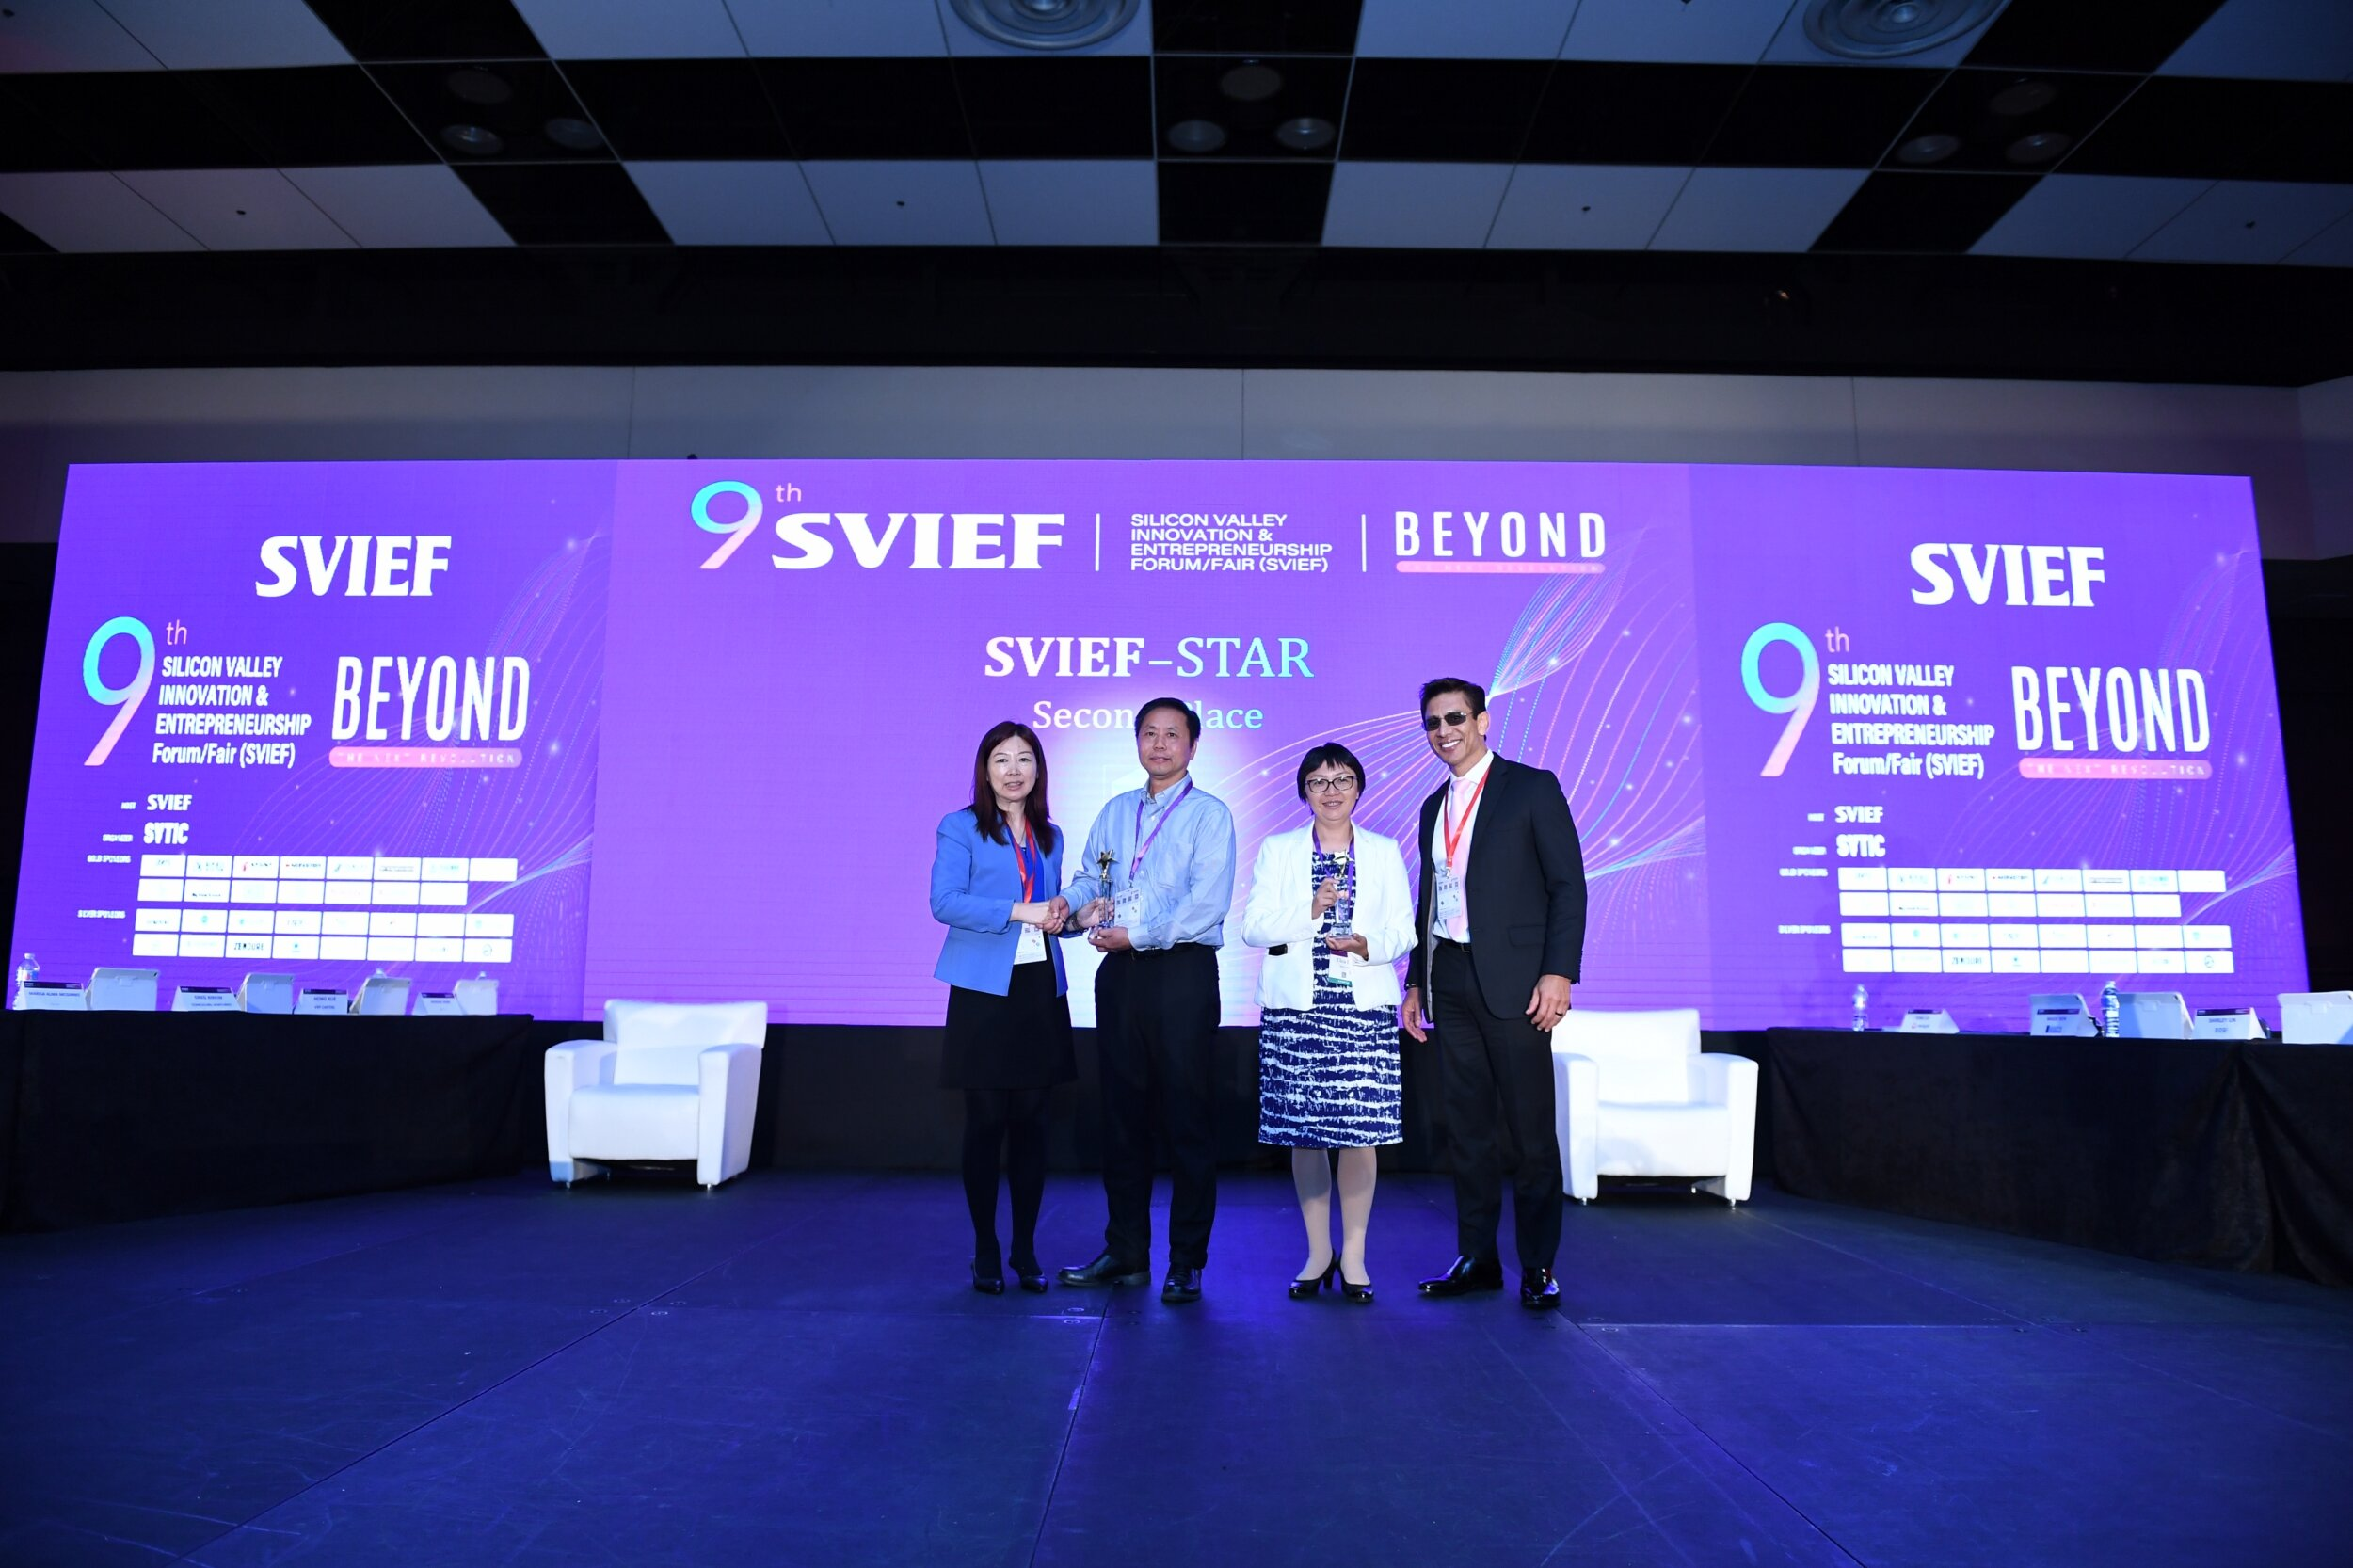 The VisionX team won the 2nd place in the 9th SVIEF-Star startup final competition on Sept.8 at Santa Clara Convention center, CA, USA. The 15 finalists in 2019 were selected from 60+ teams.